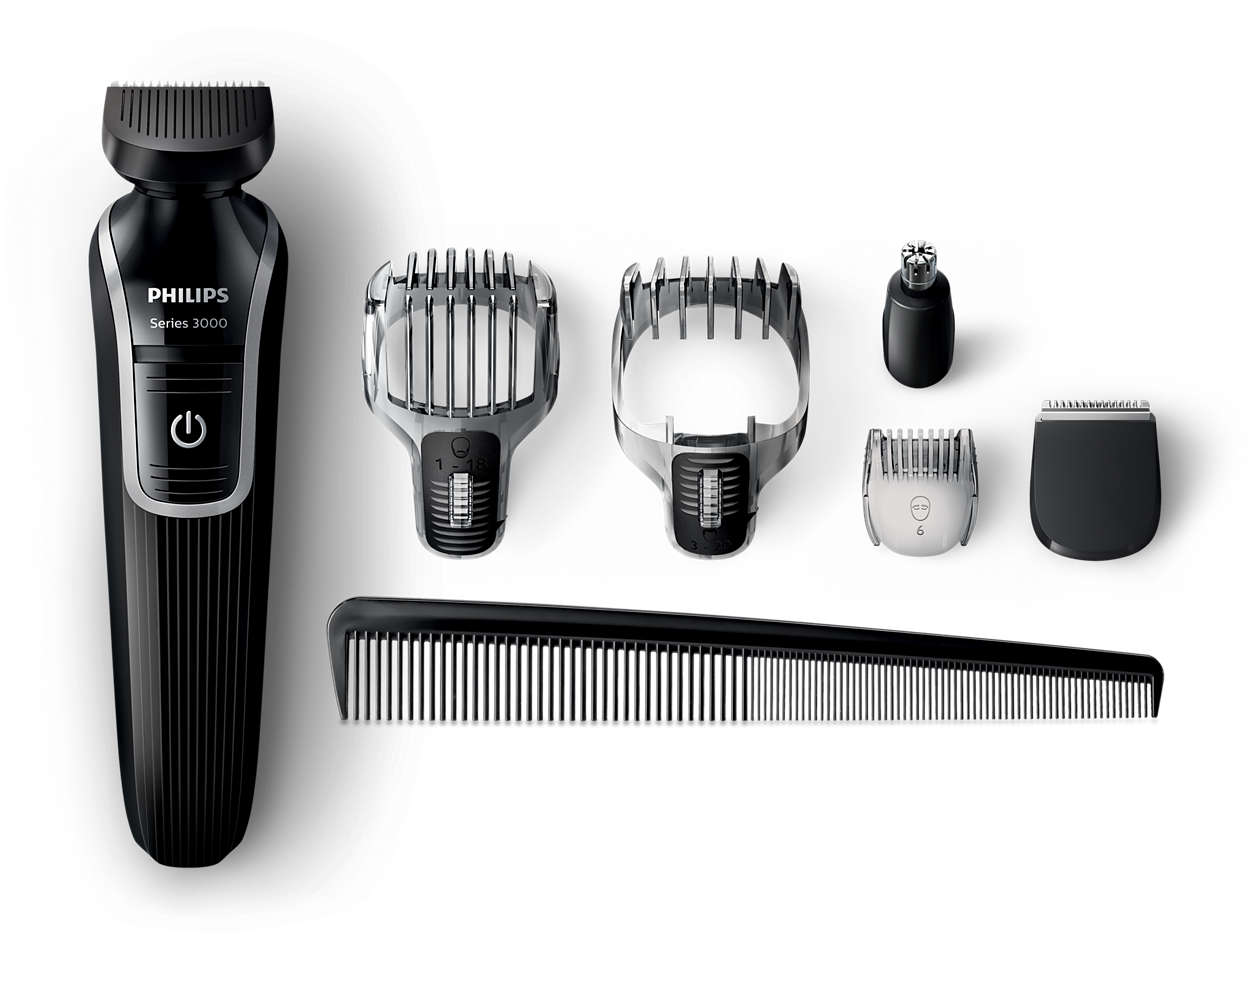 multigroom series 3000 6 in 1 beard hair trimmer qg3342 23 philips. Black Bedroom Furniture Sets. Home Design Ideas